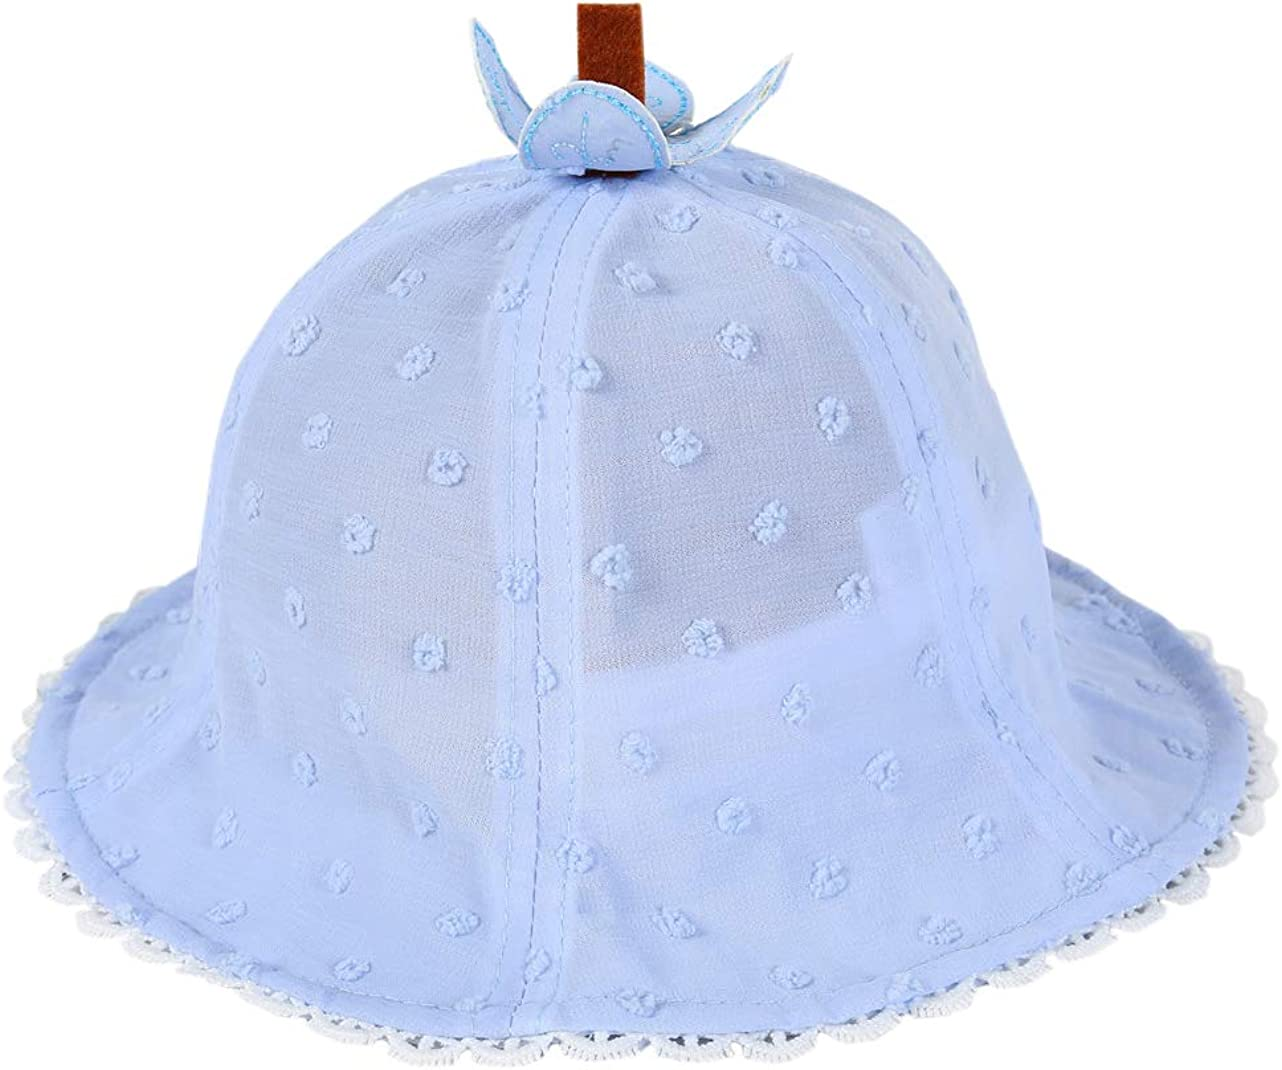 ACVIP Little Girls Princess Bunny Shaped Summer Bucket Hat Sun Protection